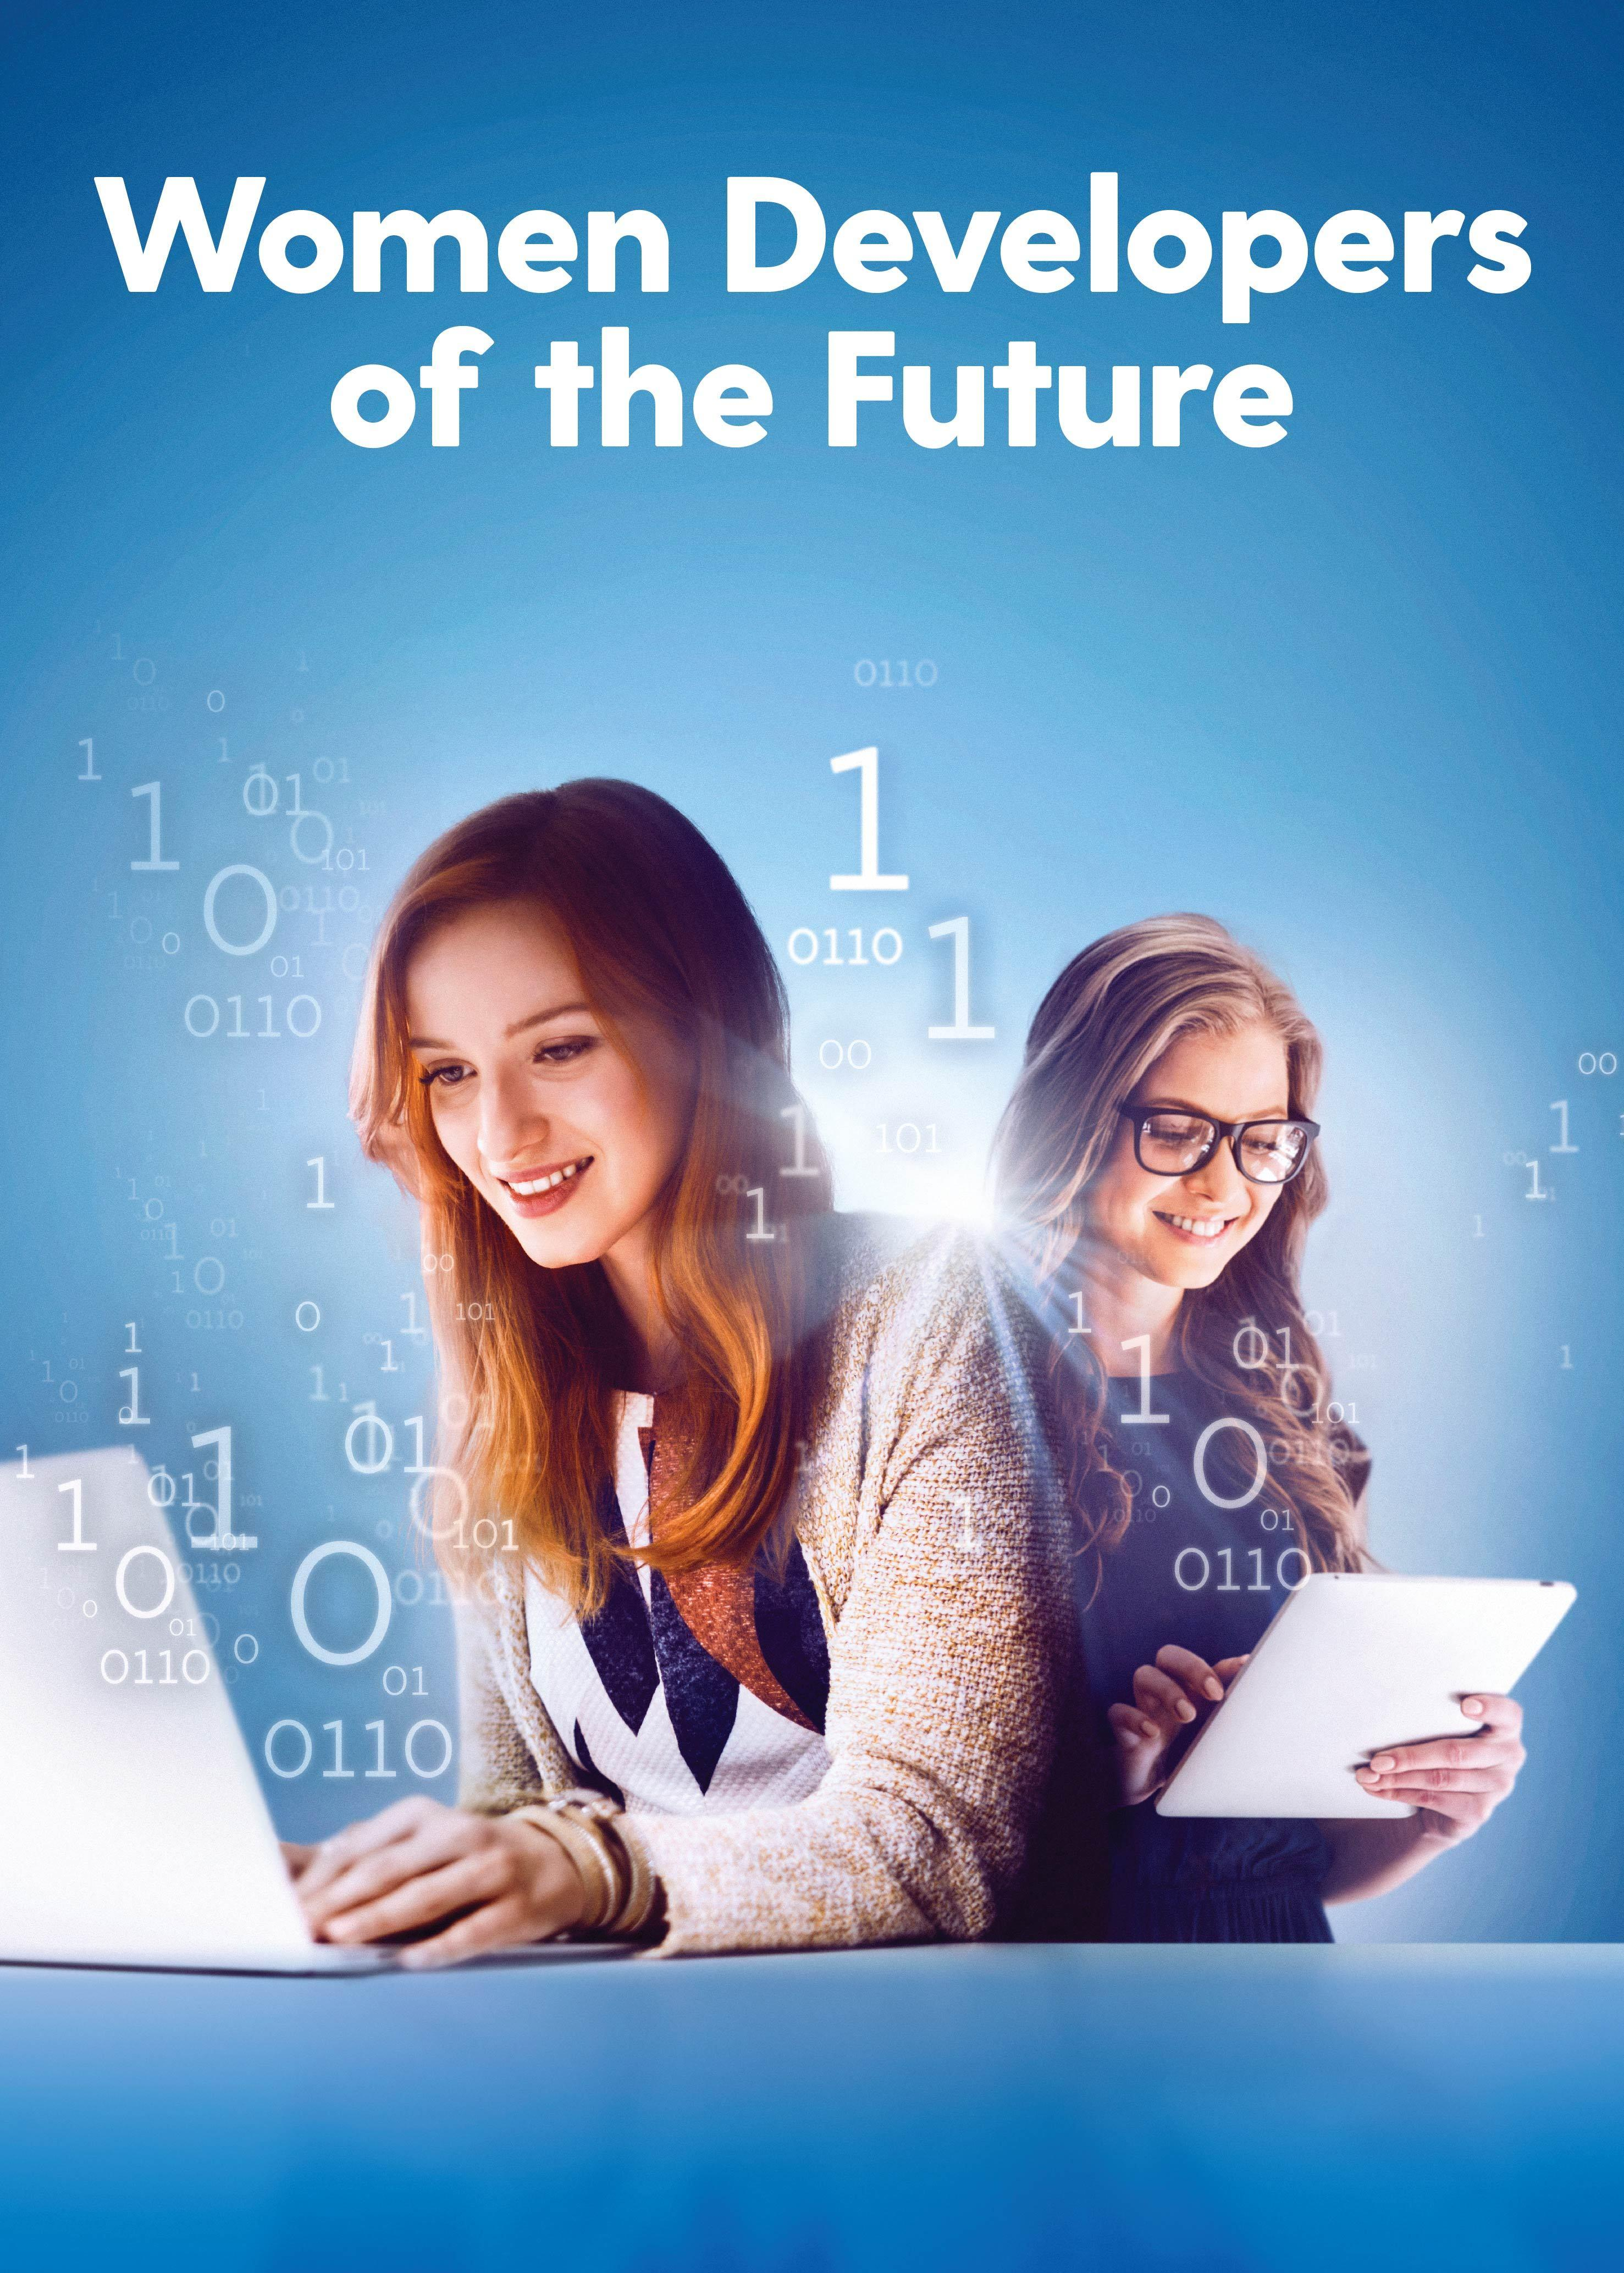 Turkcell to Join Business Call to Action with Women Developers of the Future Project